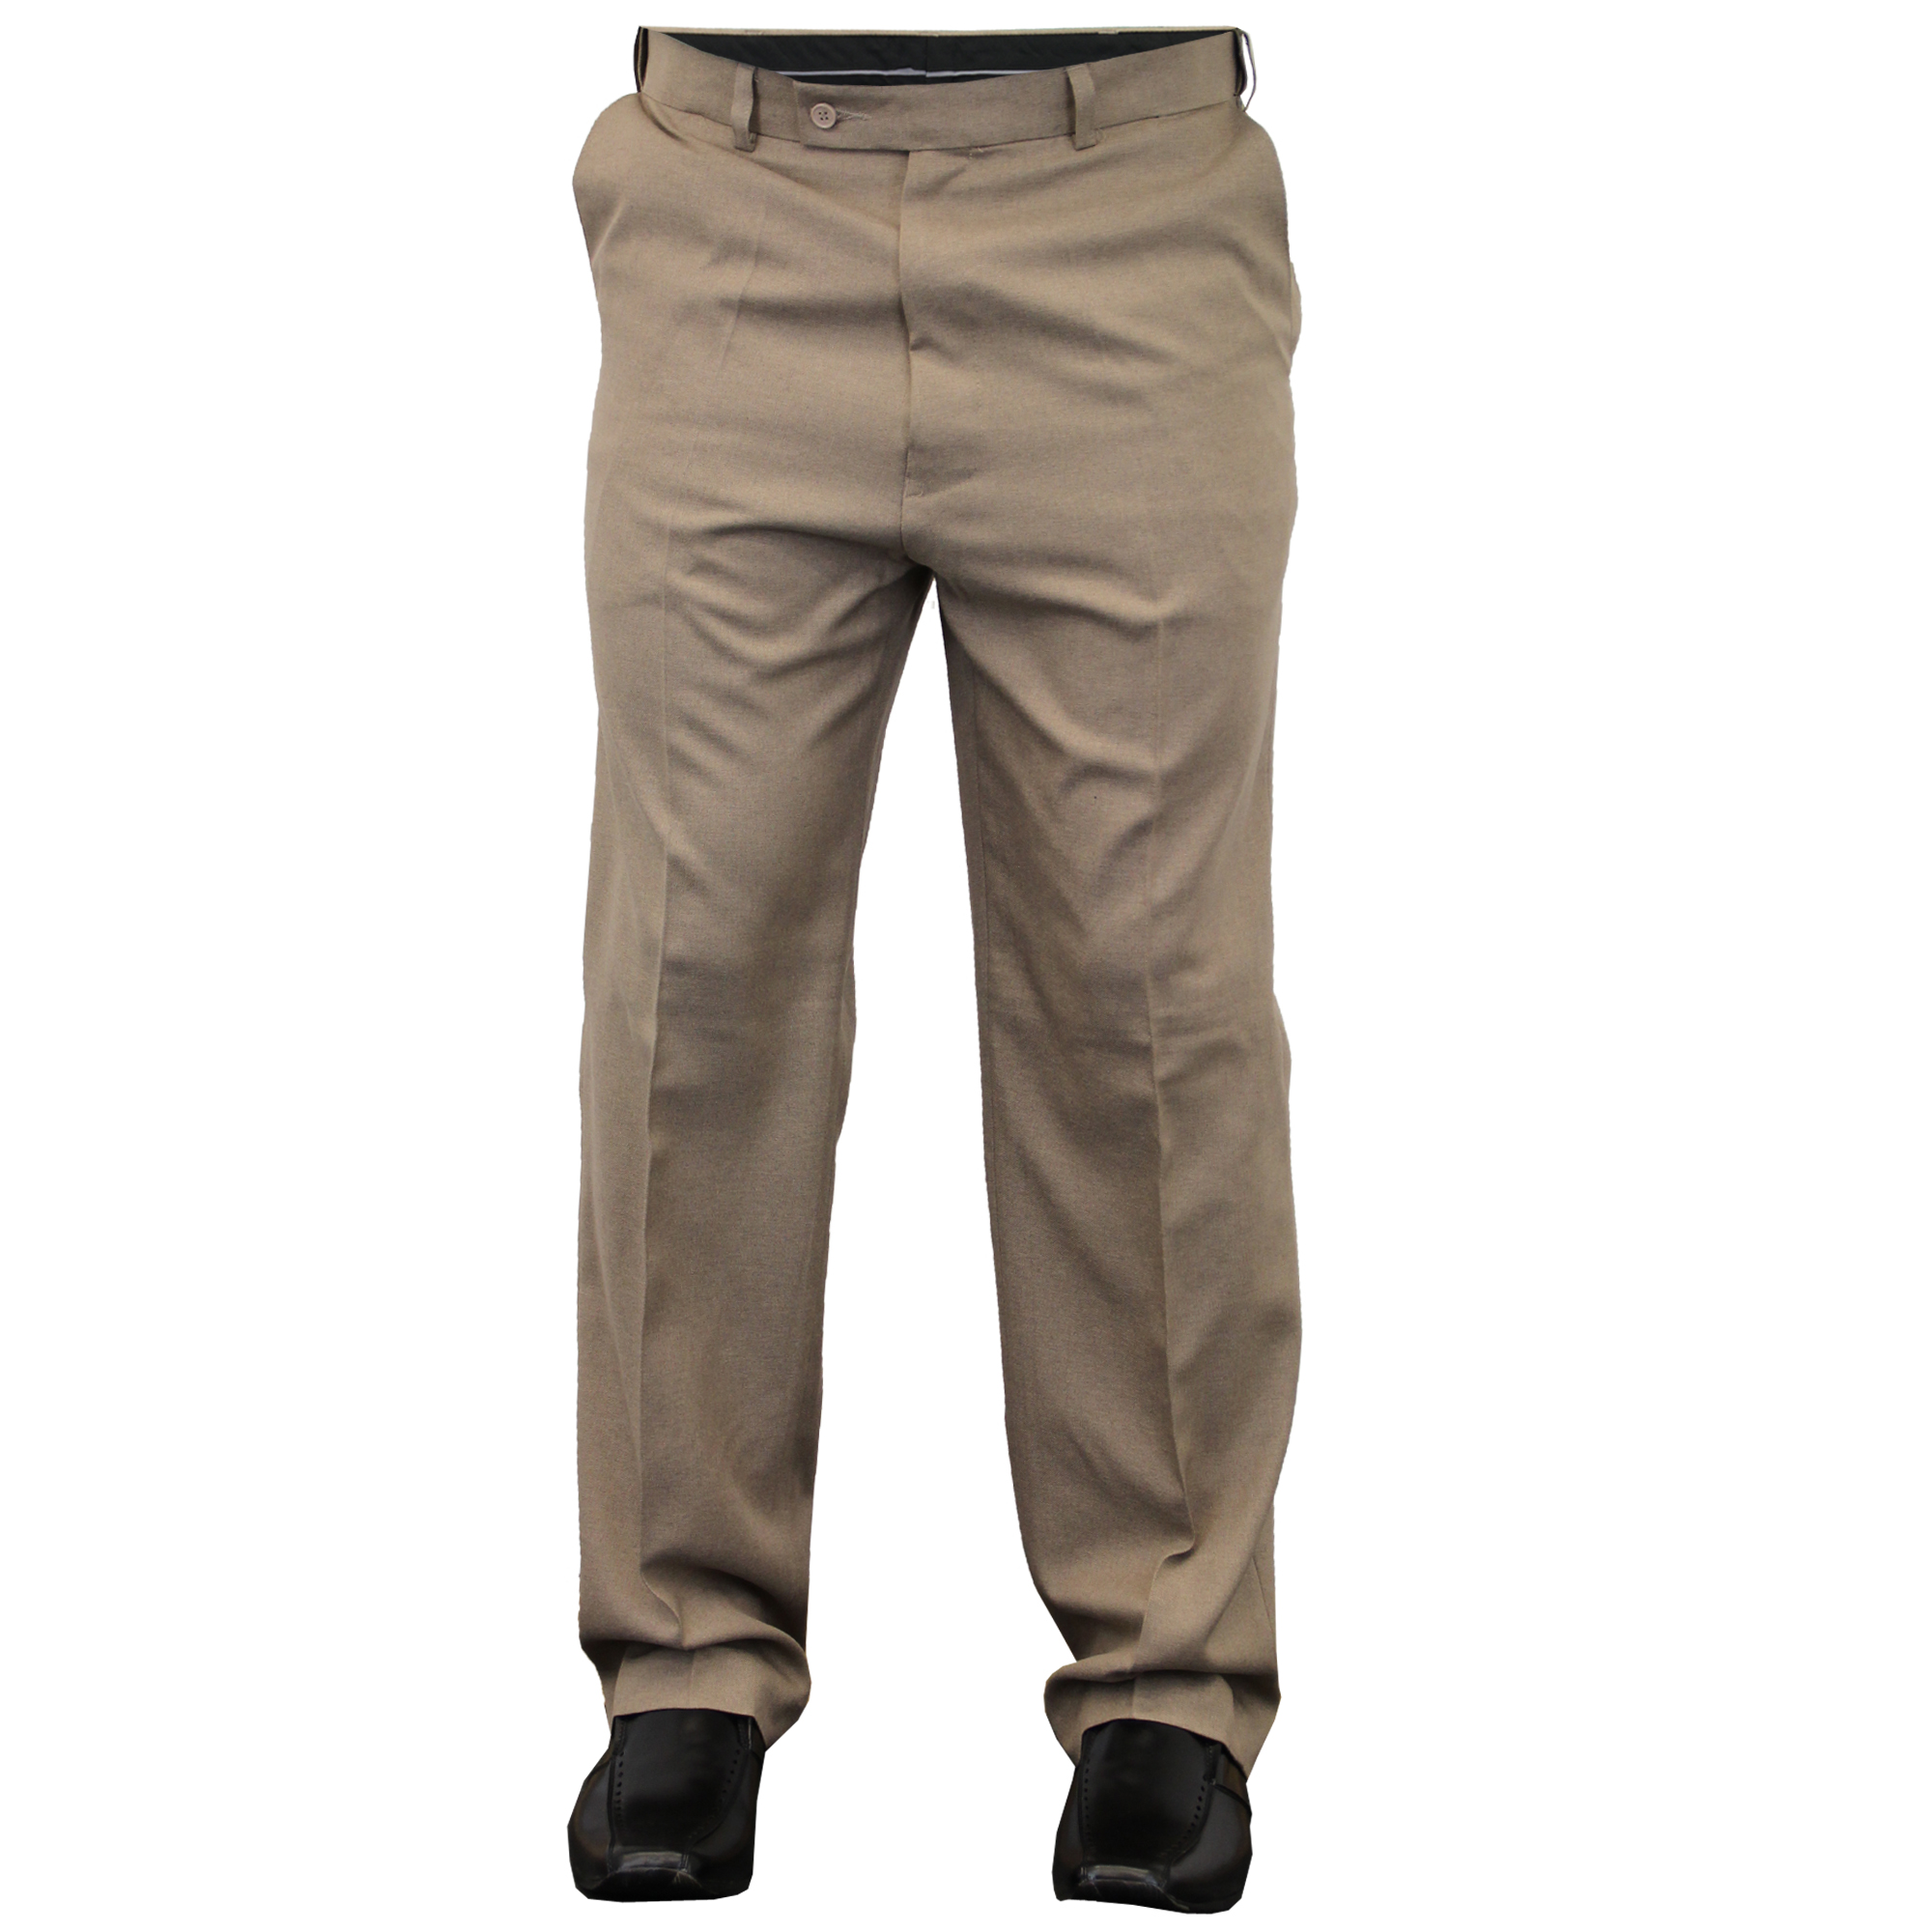 Men's Trousers Browse our extensive collection of men's trousers and discover the perfect addition to your suit jacket and shirt. Our slim fit trousers aim to give your sharp look a modern urban edge, whilst we also stock washable trousers for convenience, as well as tuxedo trousers.